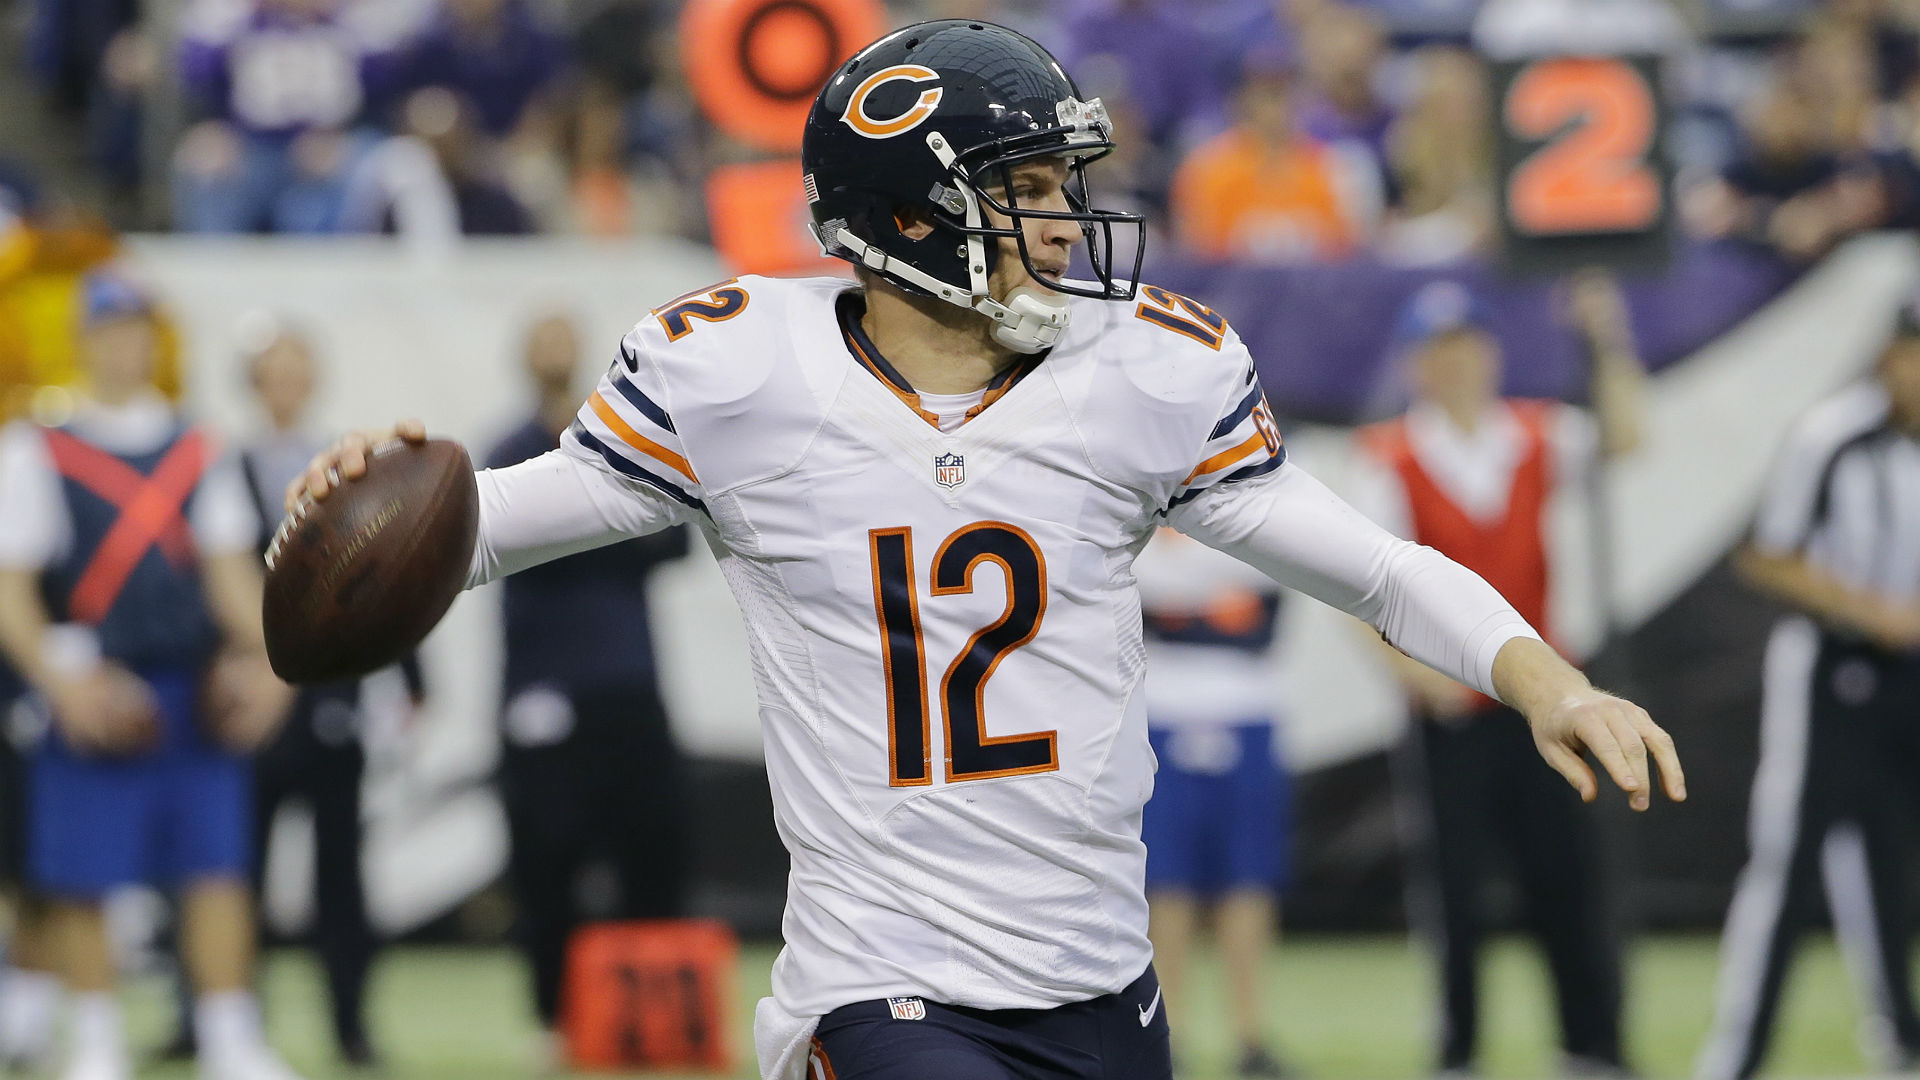 Fantasy Football Weekend Waivers: Should owners trust Josh McCown?